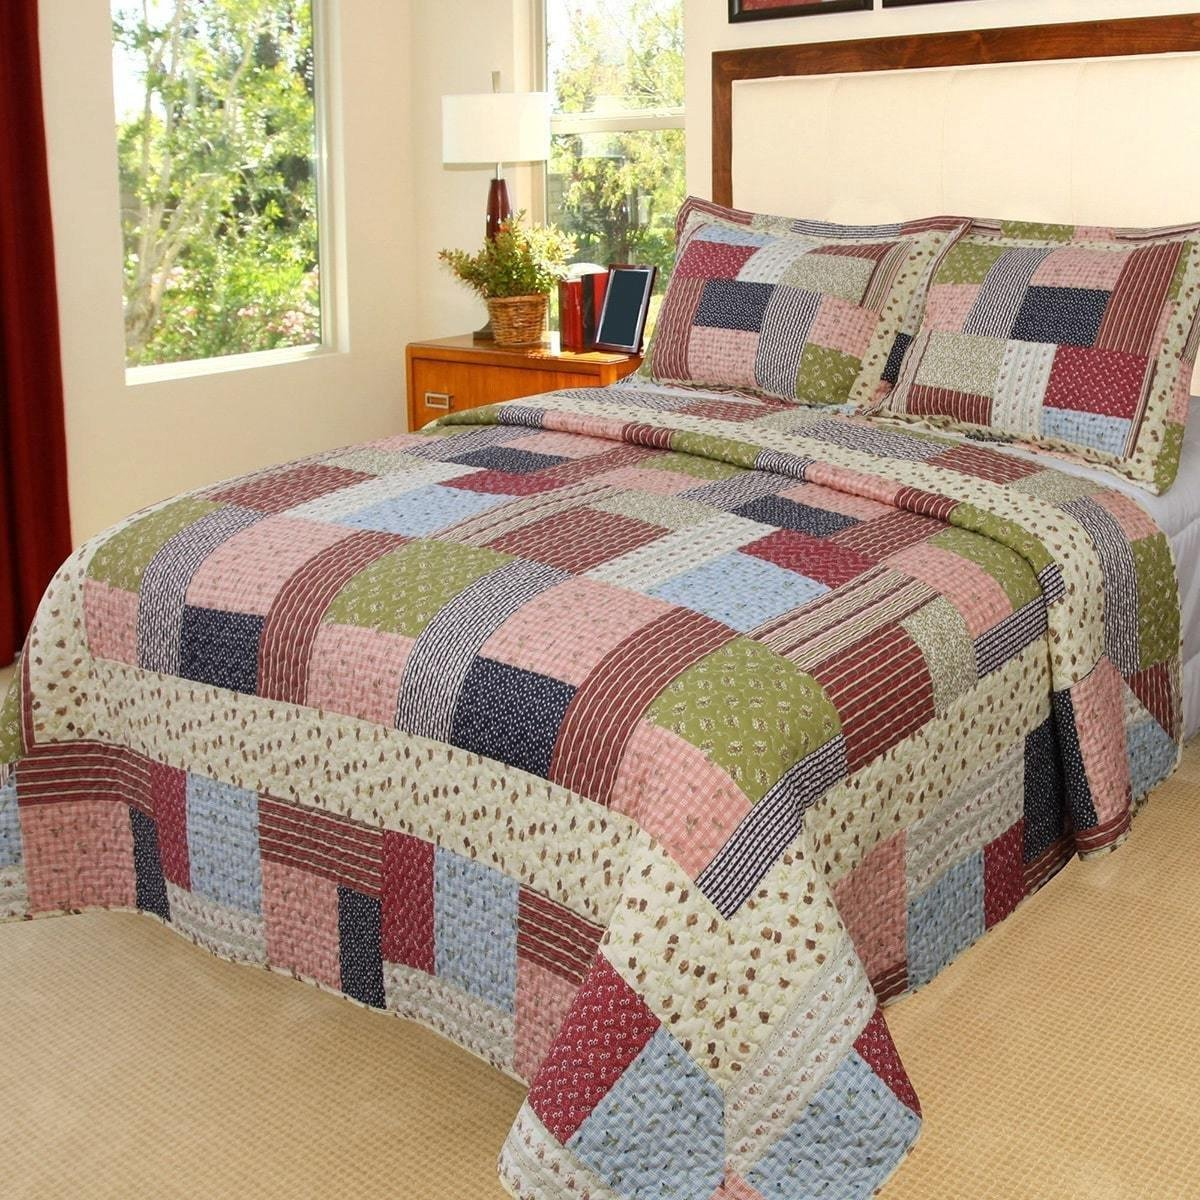 3pc Blue Pink Red Green White Twin Quilt Set, Cotton, Tartan Plaid Patchwork Themed Bedding Cottage Cabin Country Vintage Western Lodge Checkered Shabby Chic Floral Paisley Stripe